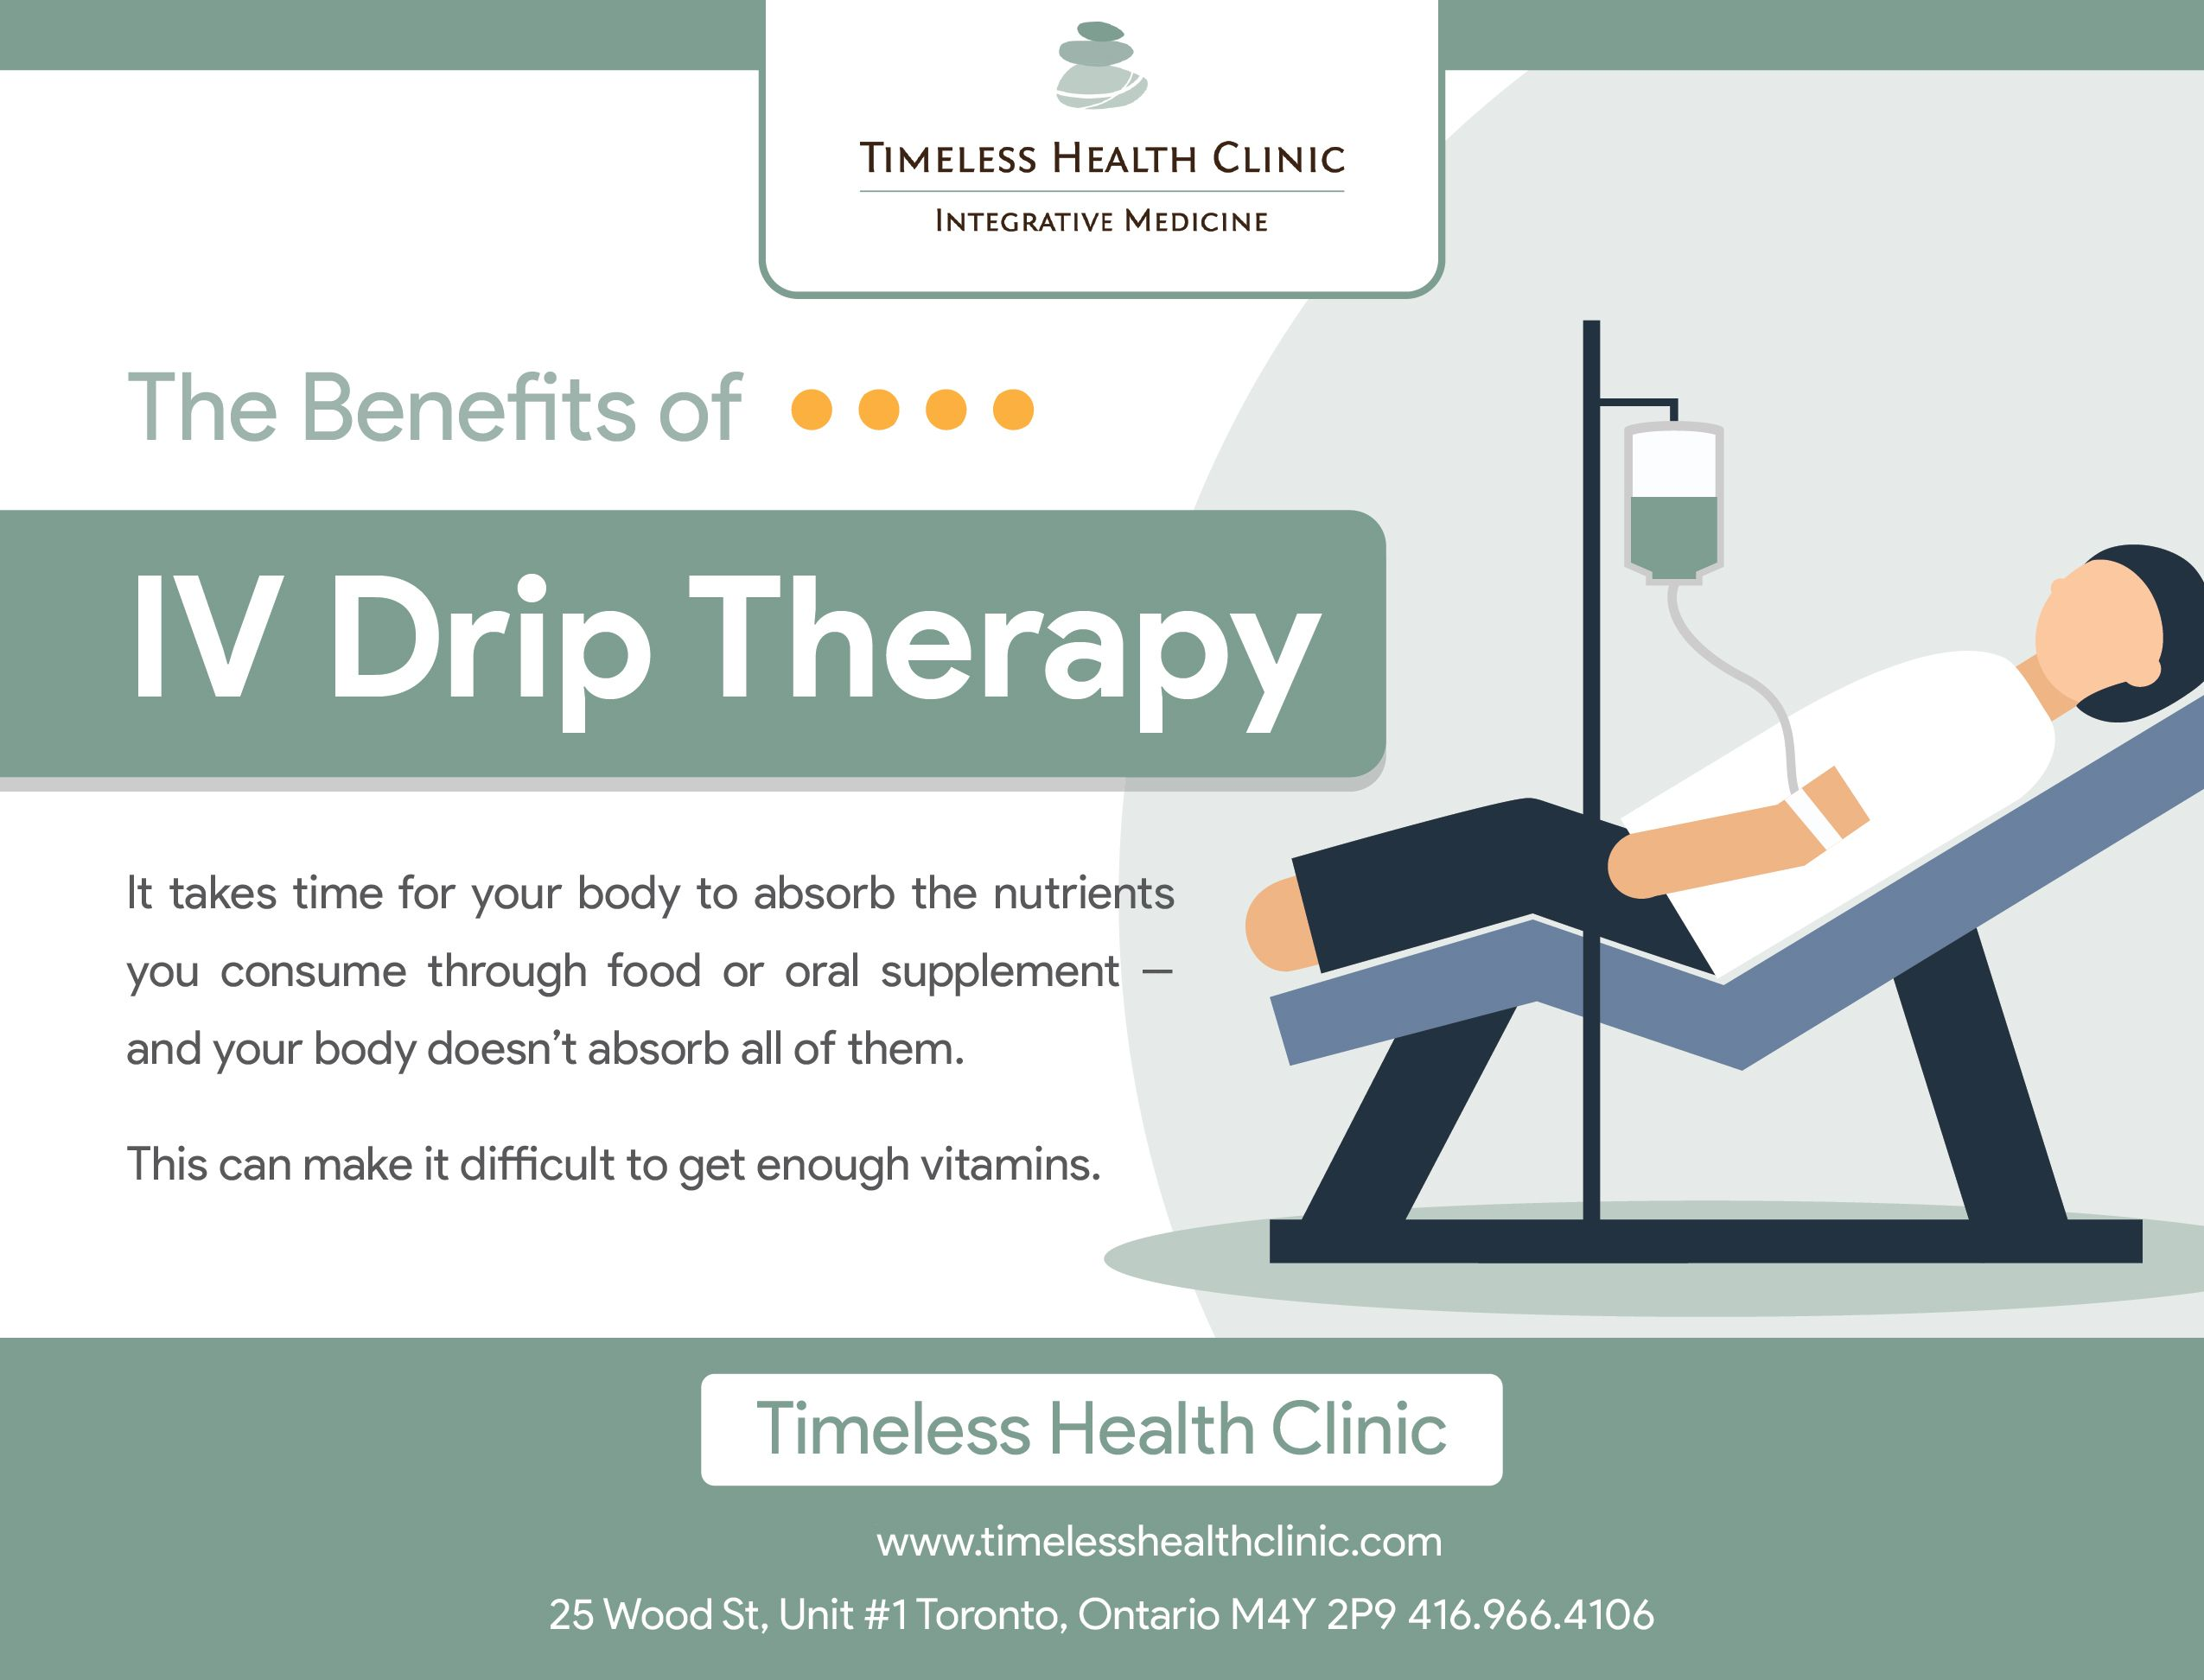 The Benefits of IV Drip Therapy Timeless Health Clinic